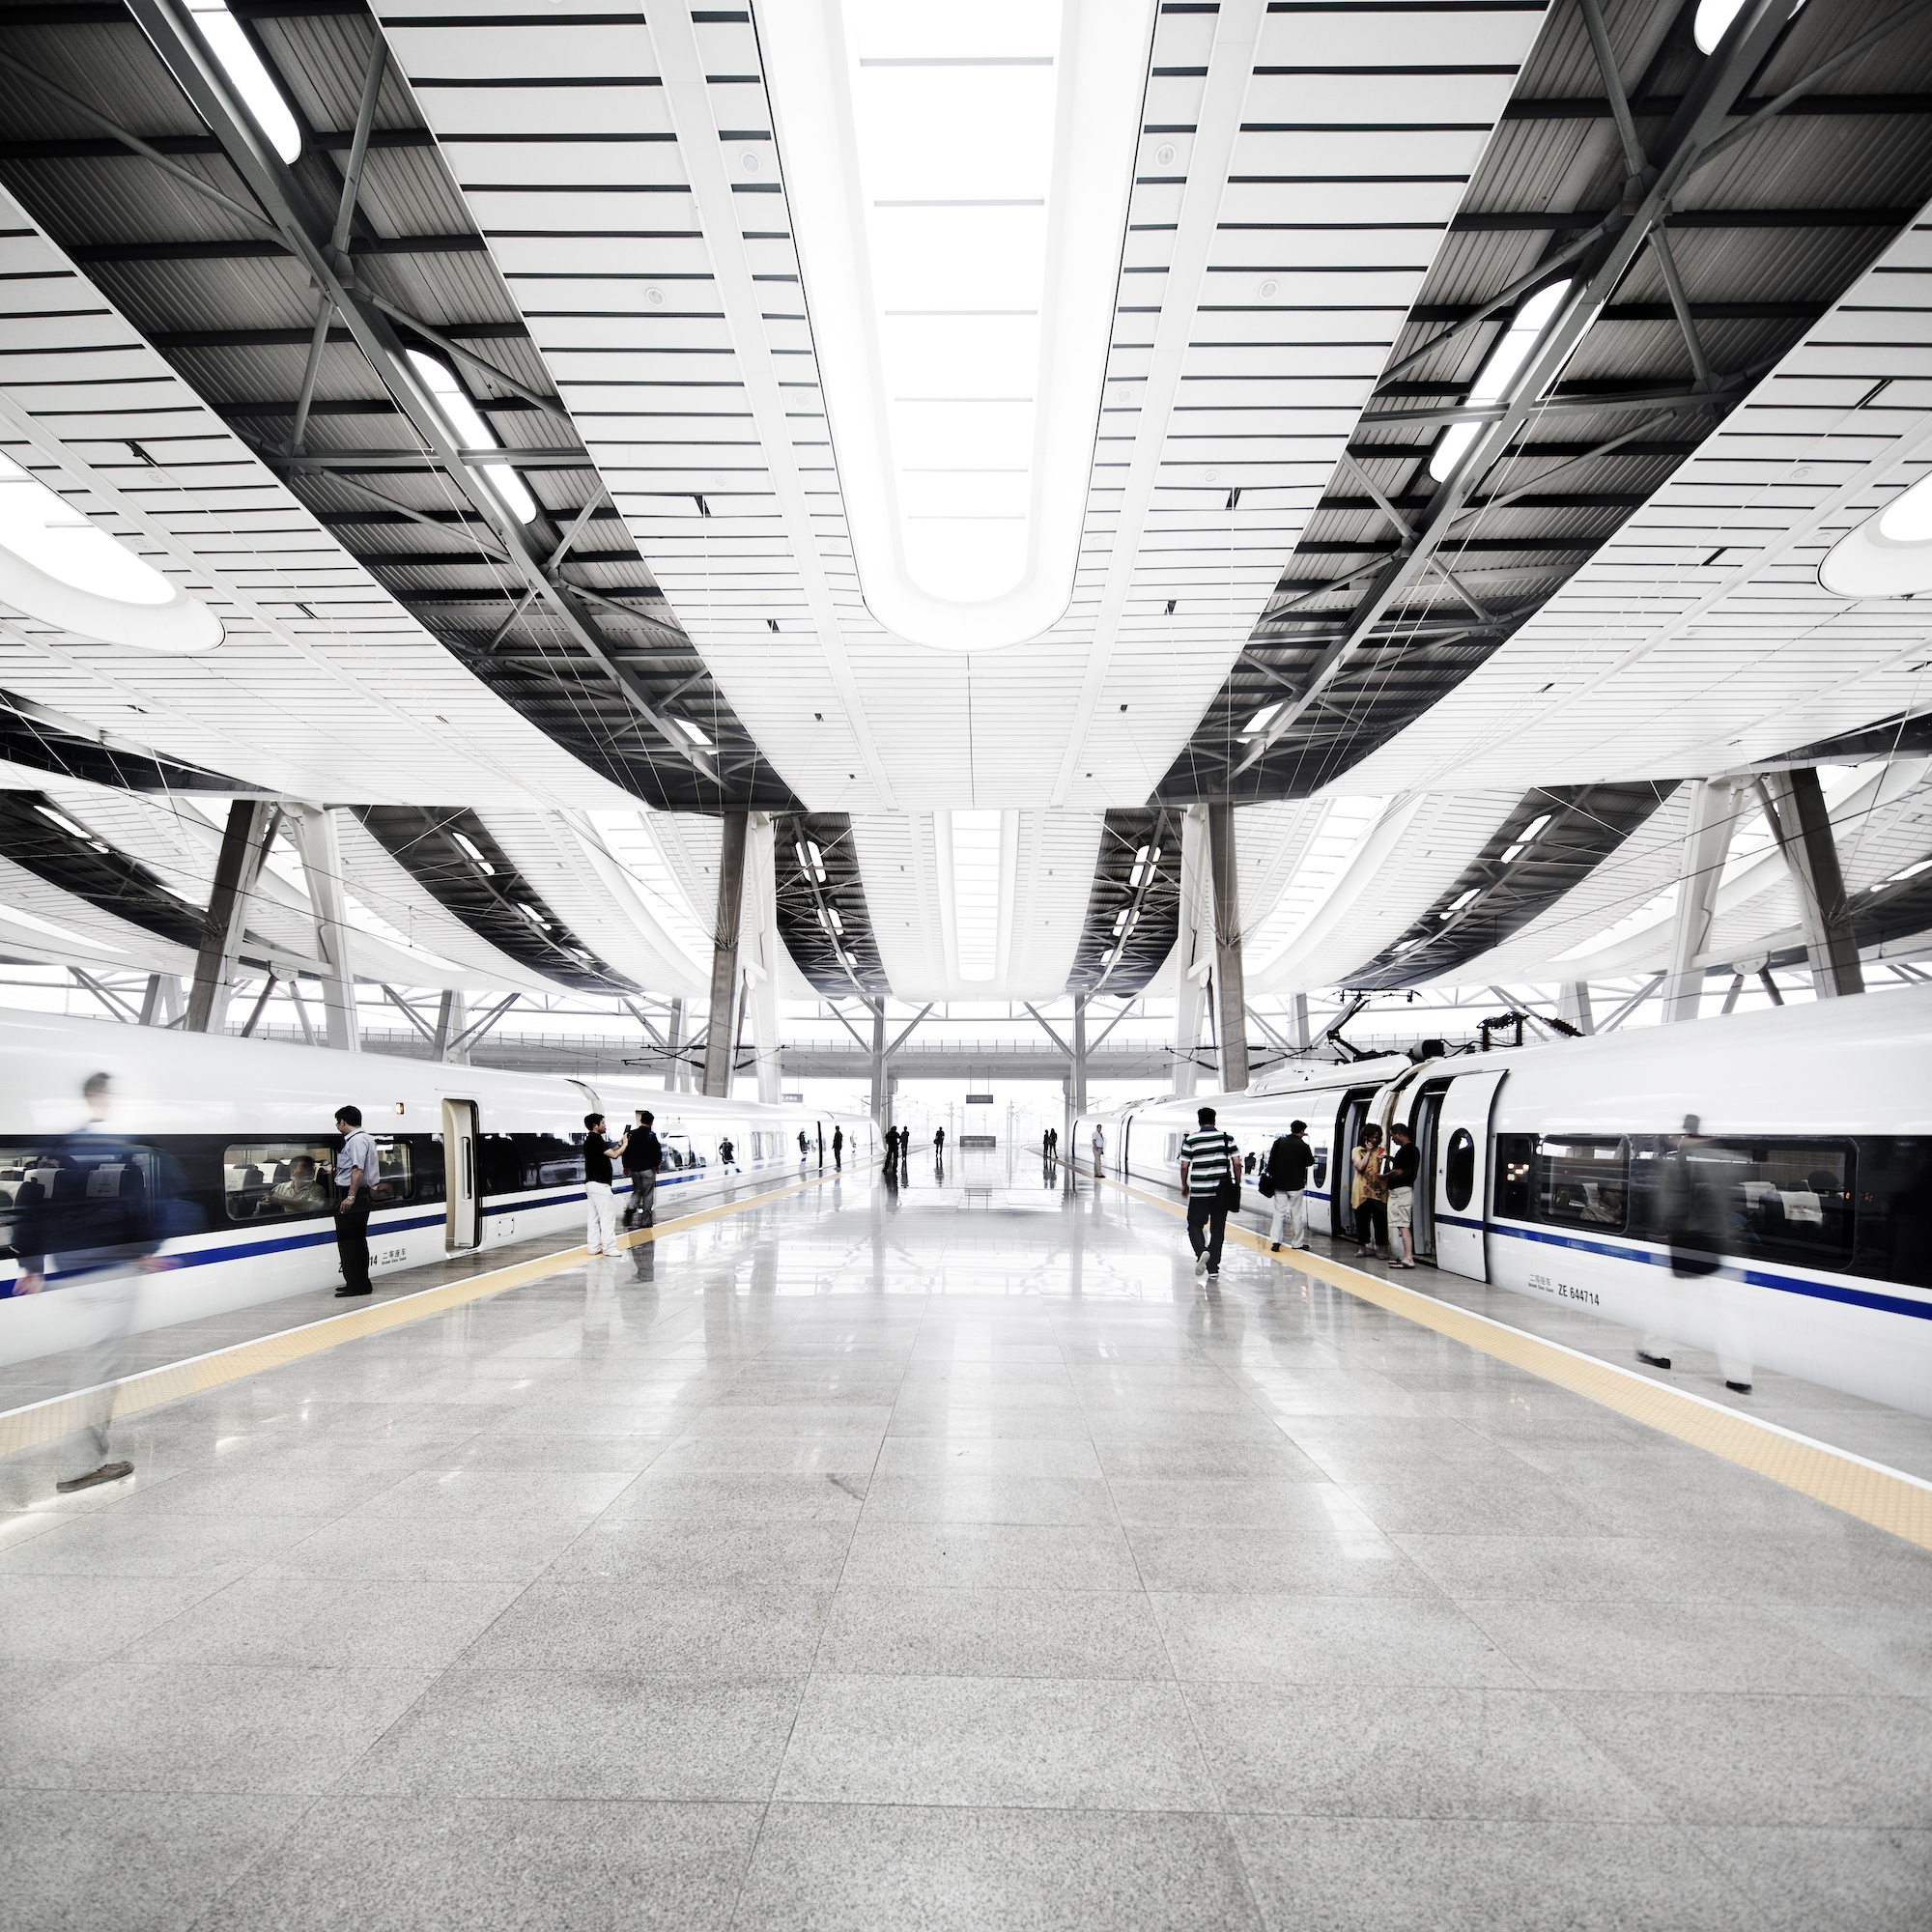 Under the massive curved roof of the Beijing South Railway Station, China